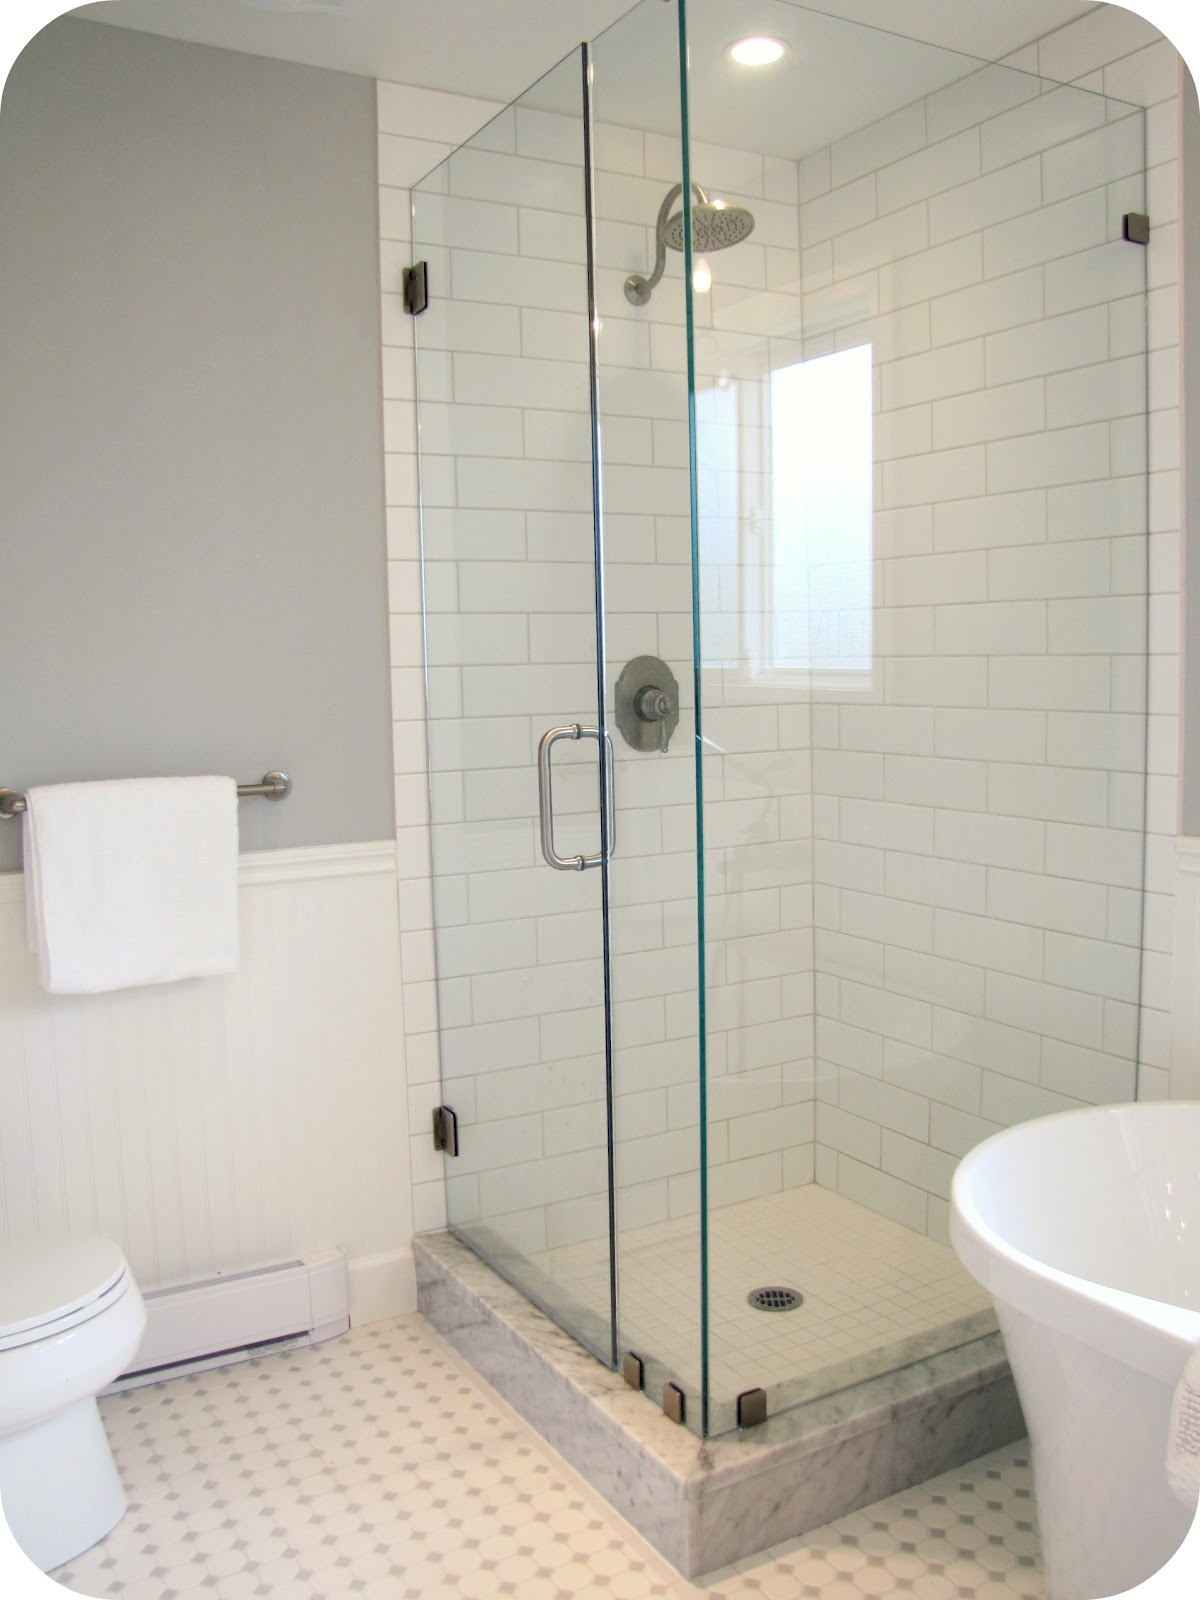 Bathroom idea shower tile bathroom shower bathroom 2 bp blogspot com - Glass Shower Walls White And Grey Bathroom Renovation Makeover Carrera Marble Hex Tile Image Source 2 Bp Blogspot Com